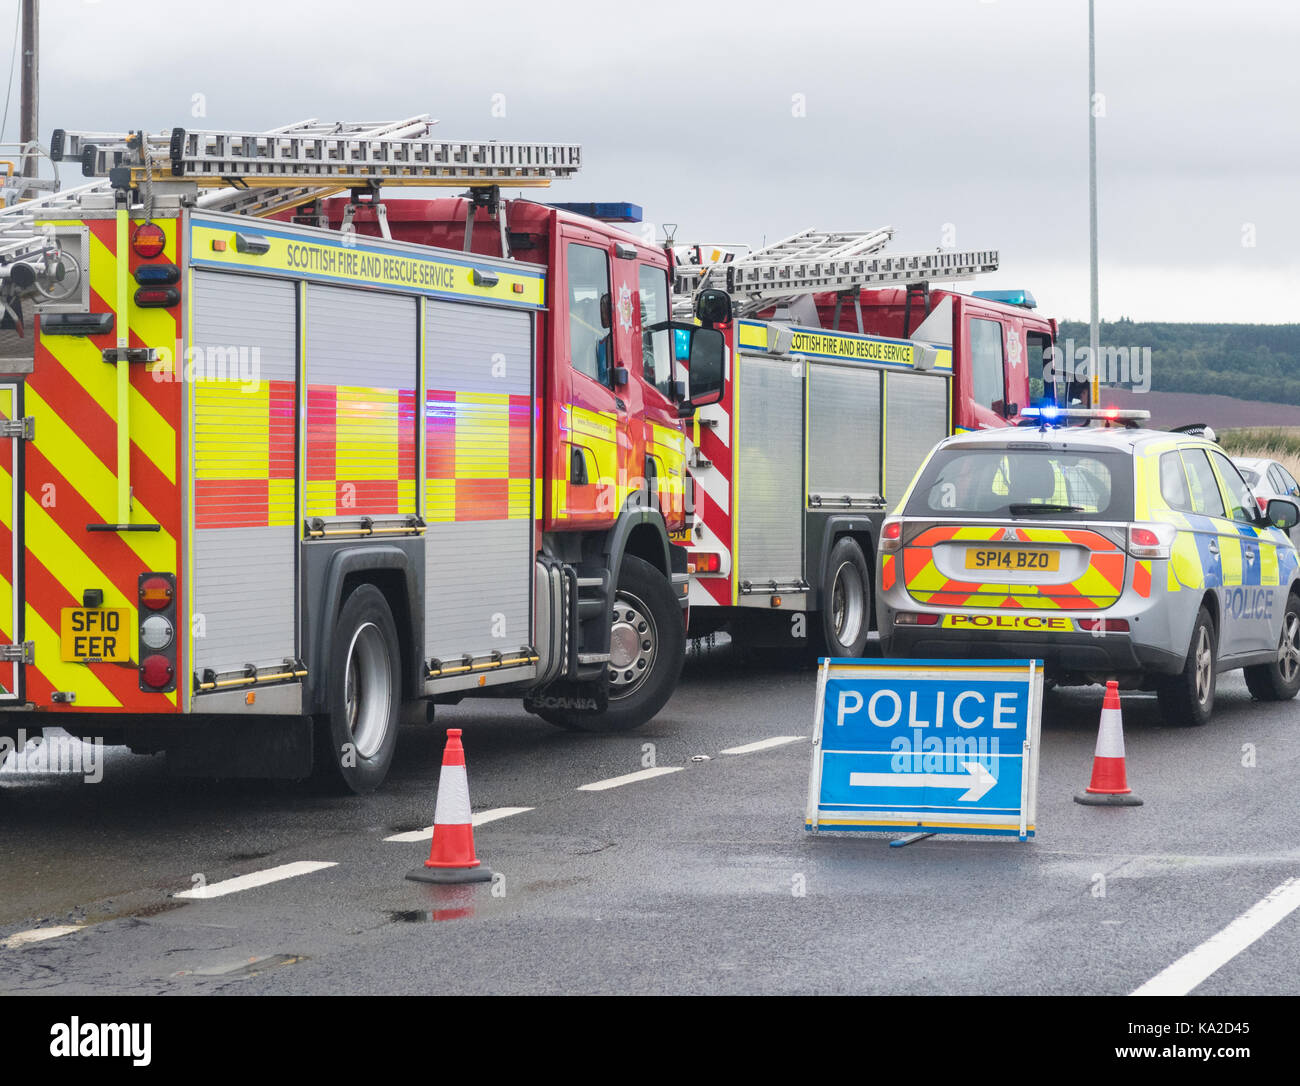 emergency services vehicles at a road traffic accident, Scotland, UK - Stock Image